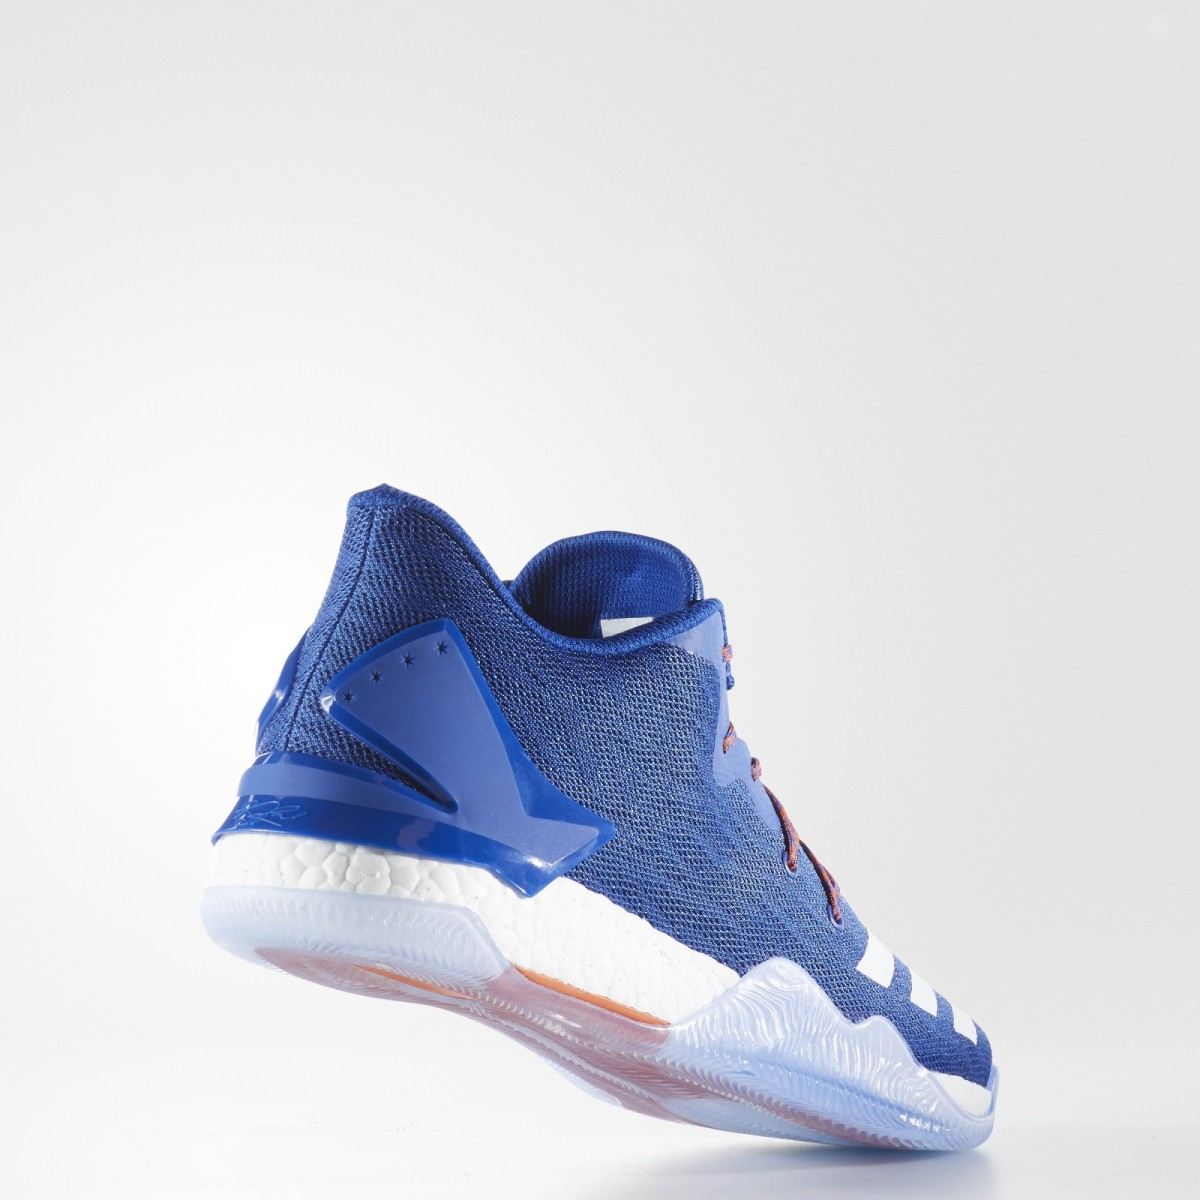 Adidas D Rose 7 Low 'Knicks' BY4499